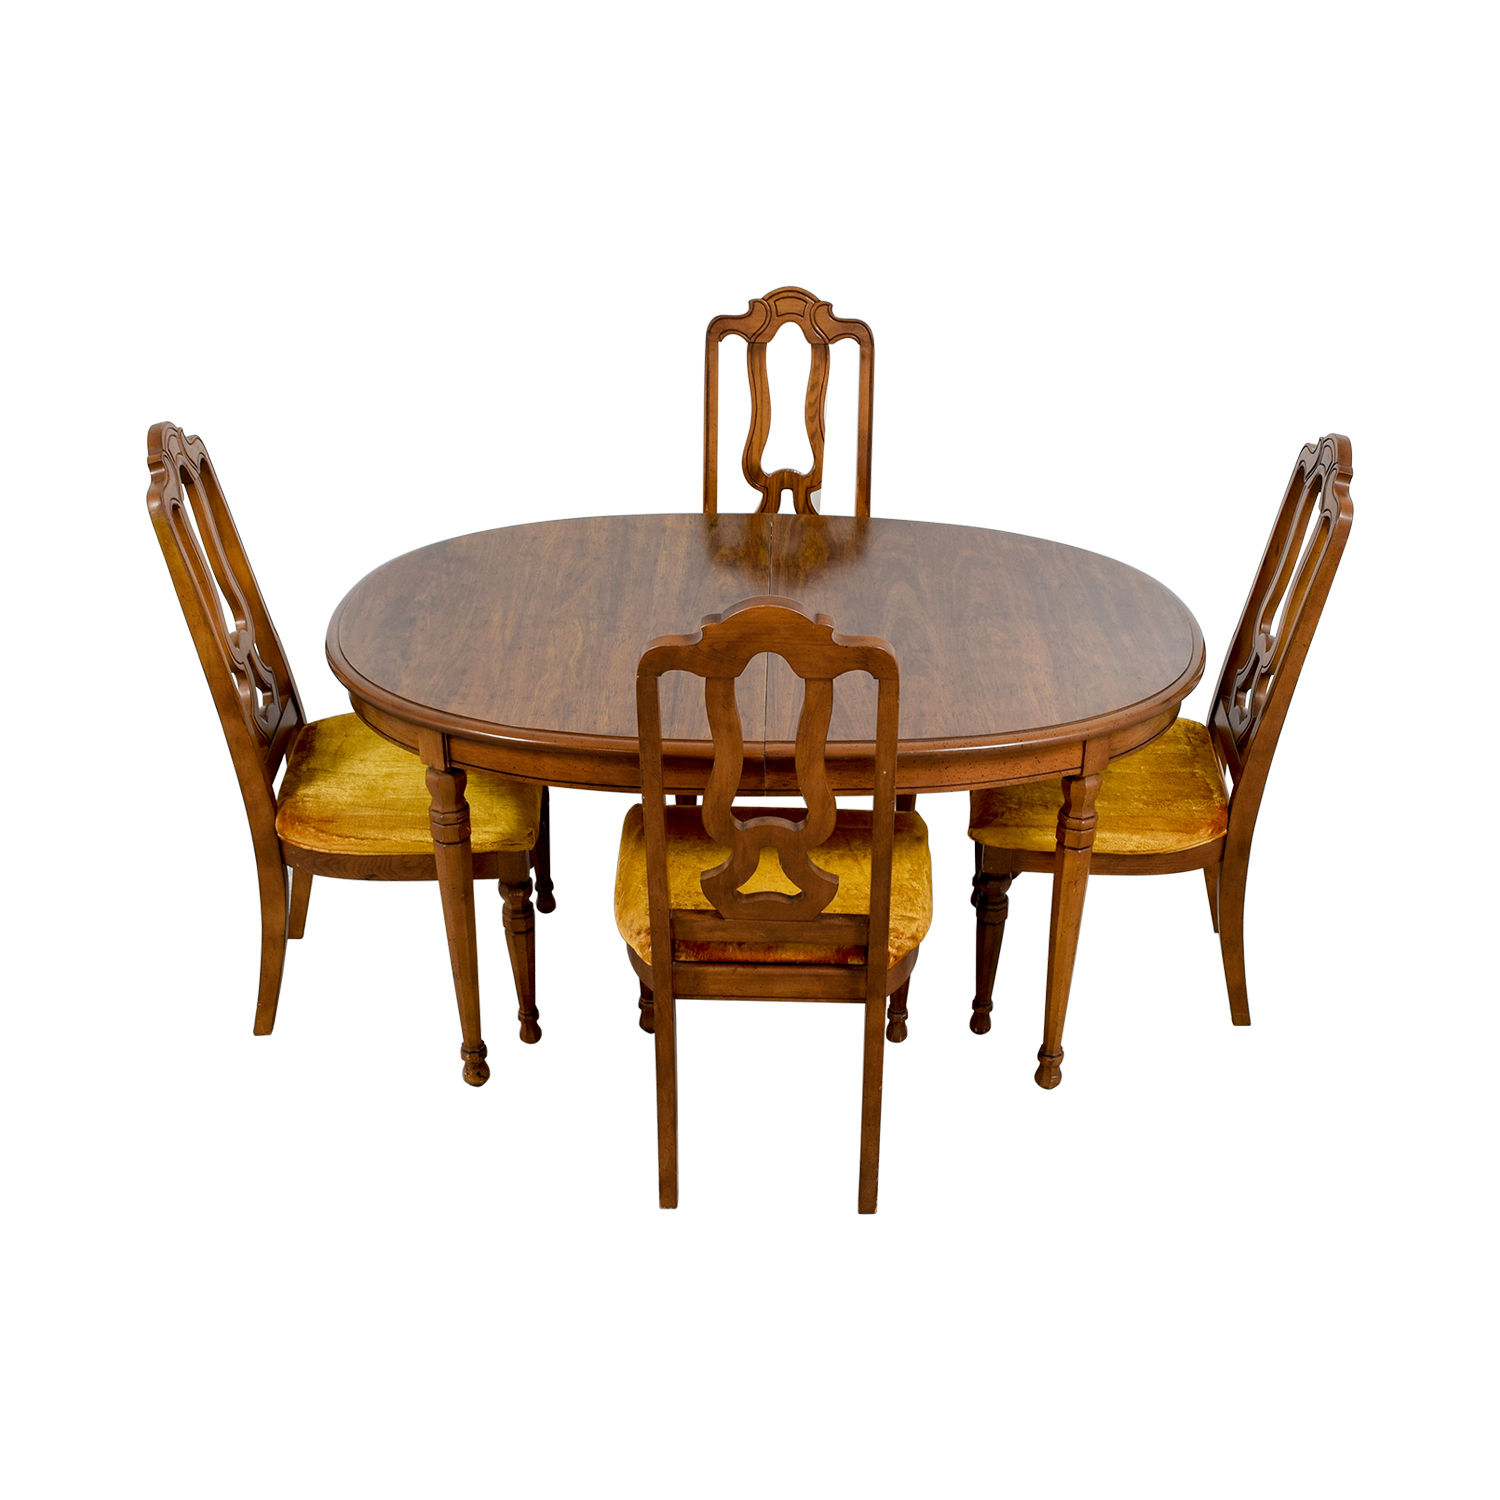 ... Bernhardt Bernhardt Vintage Dining Set with Extension Leaf and Chairs for sale ...  sc 1 st  Furnishare & 90% OFF - Bernhardt Bernhardt Vintage Dining Set with Extension Leaf ...